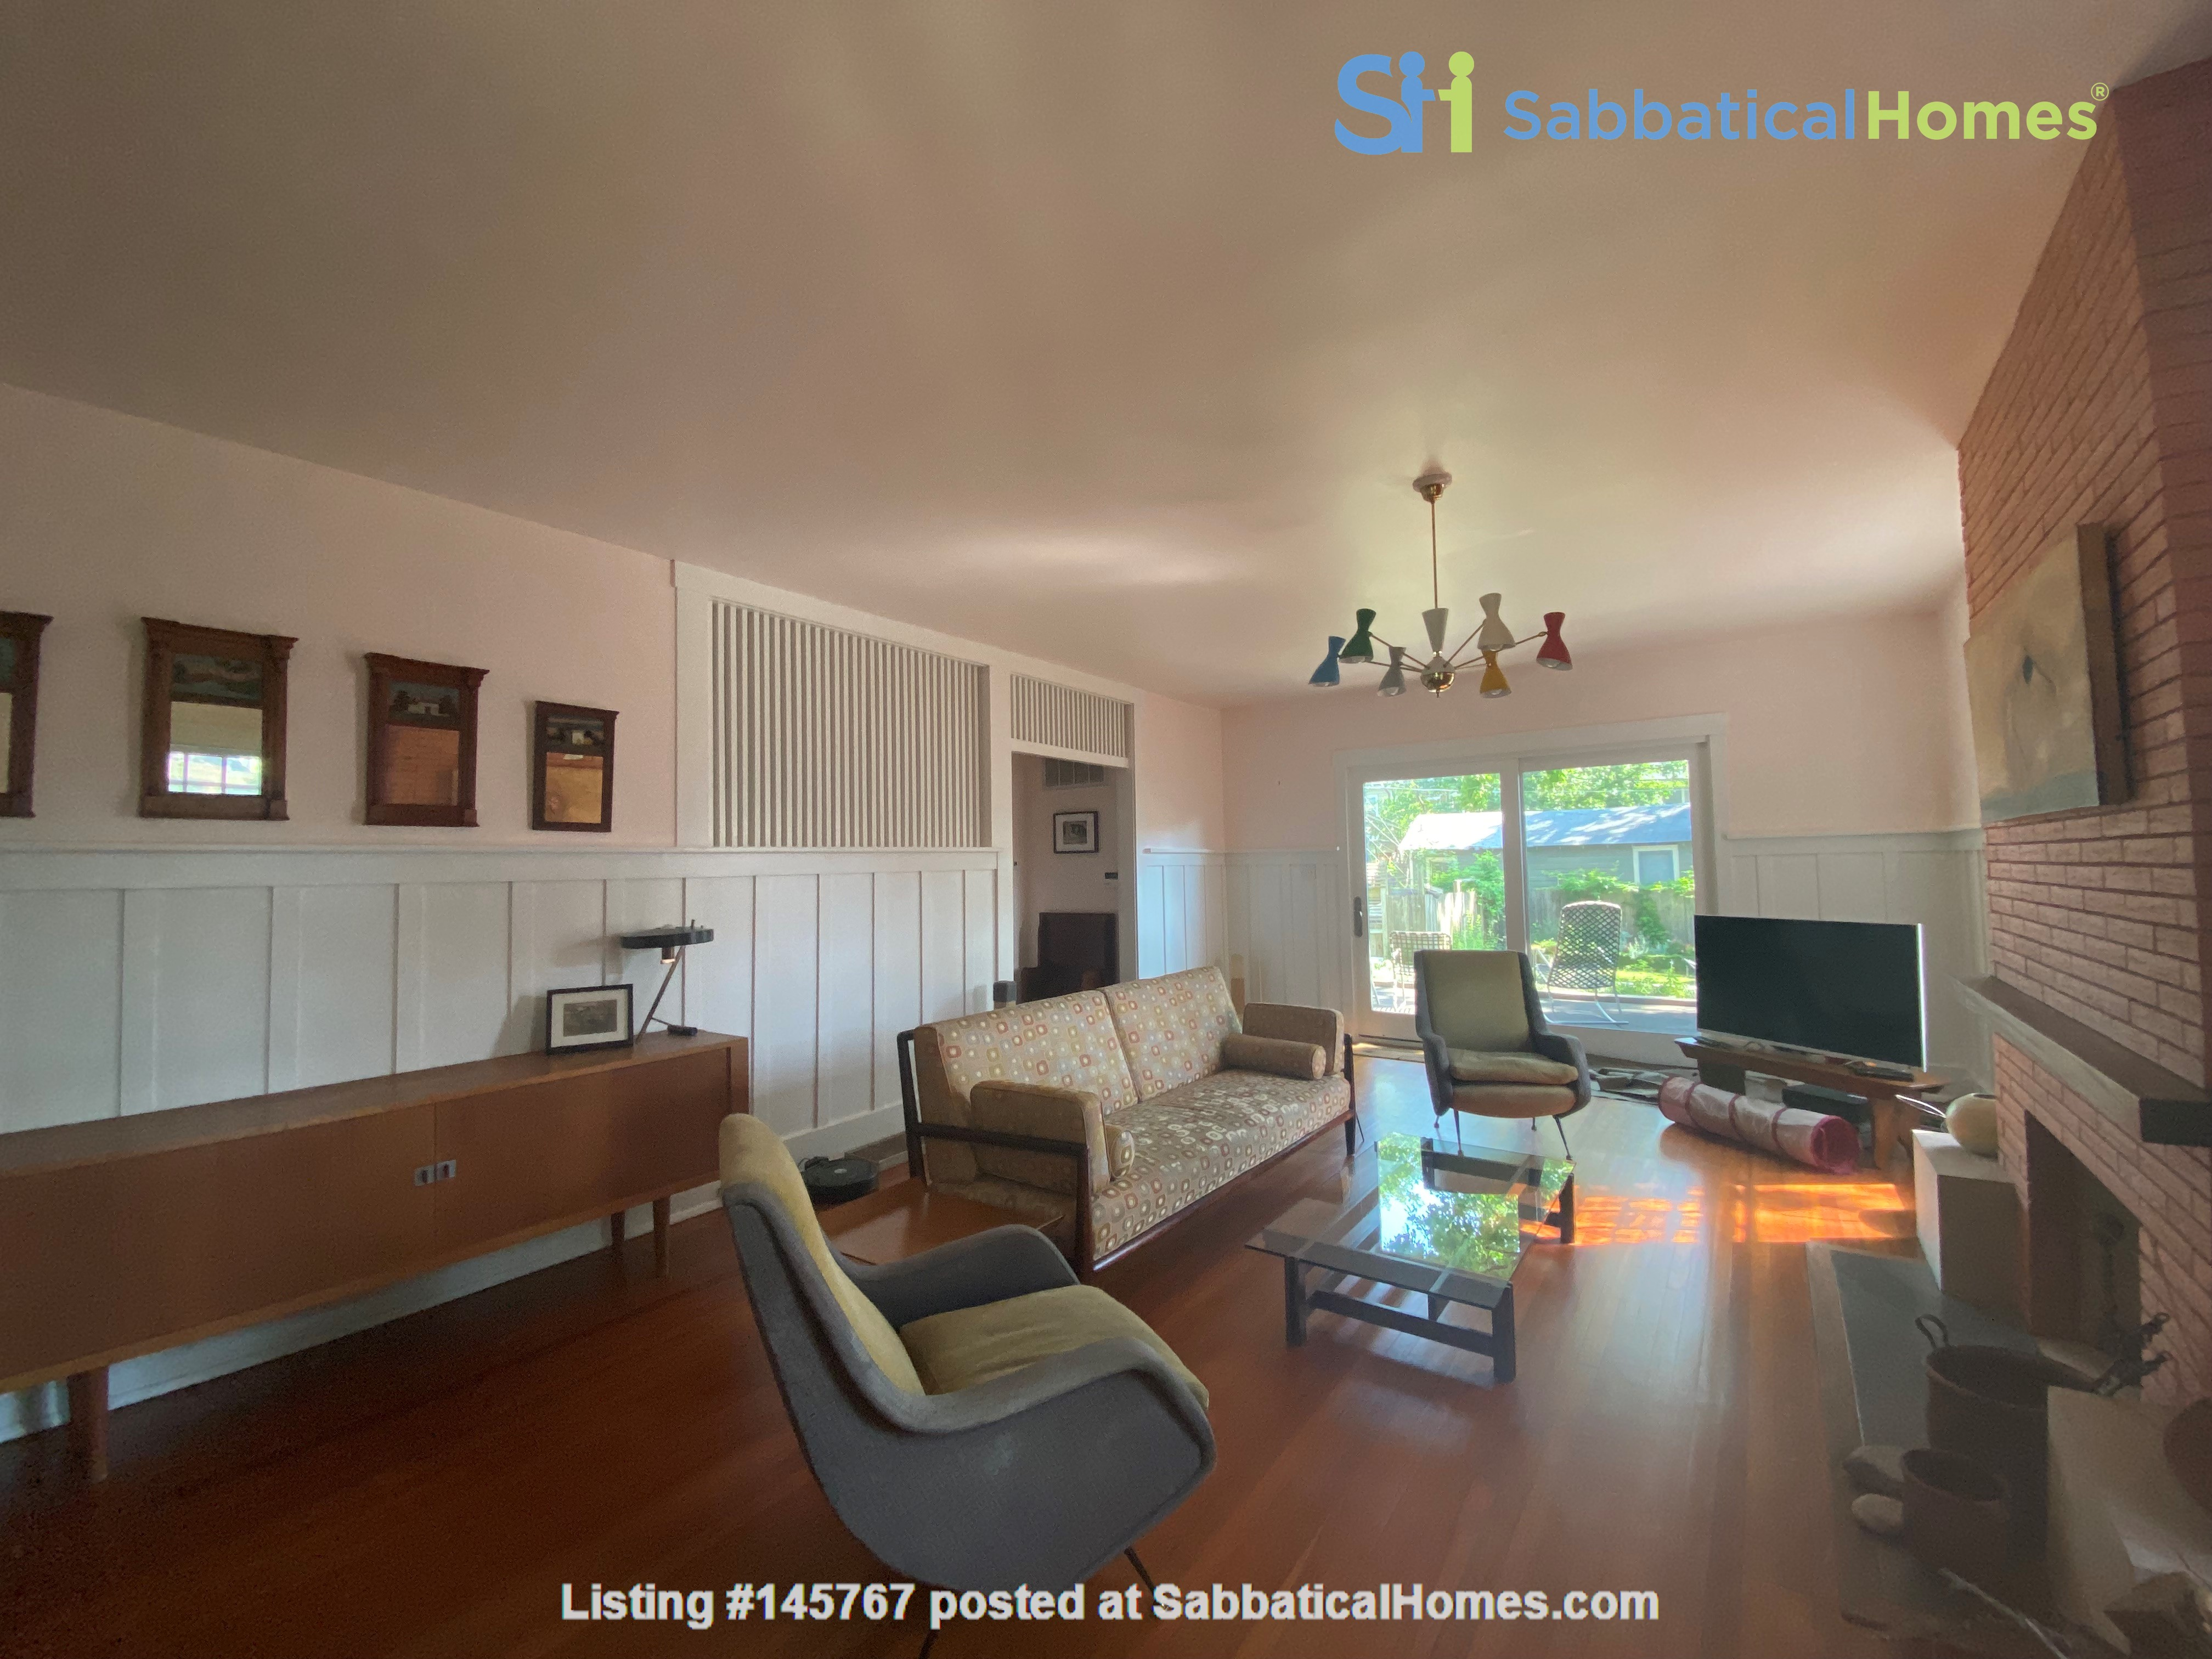 Beautiful 1920s Craftsman House (furnished, home share) Home Rental in Austin 1